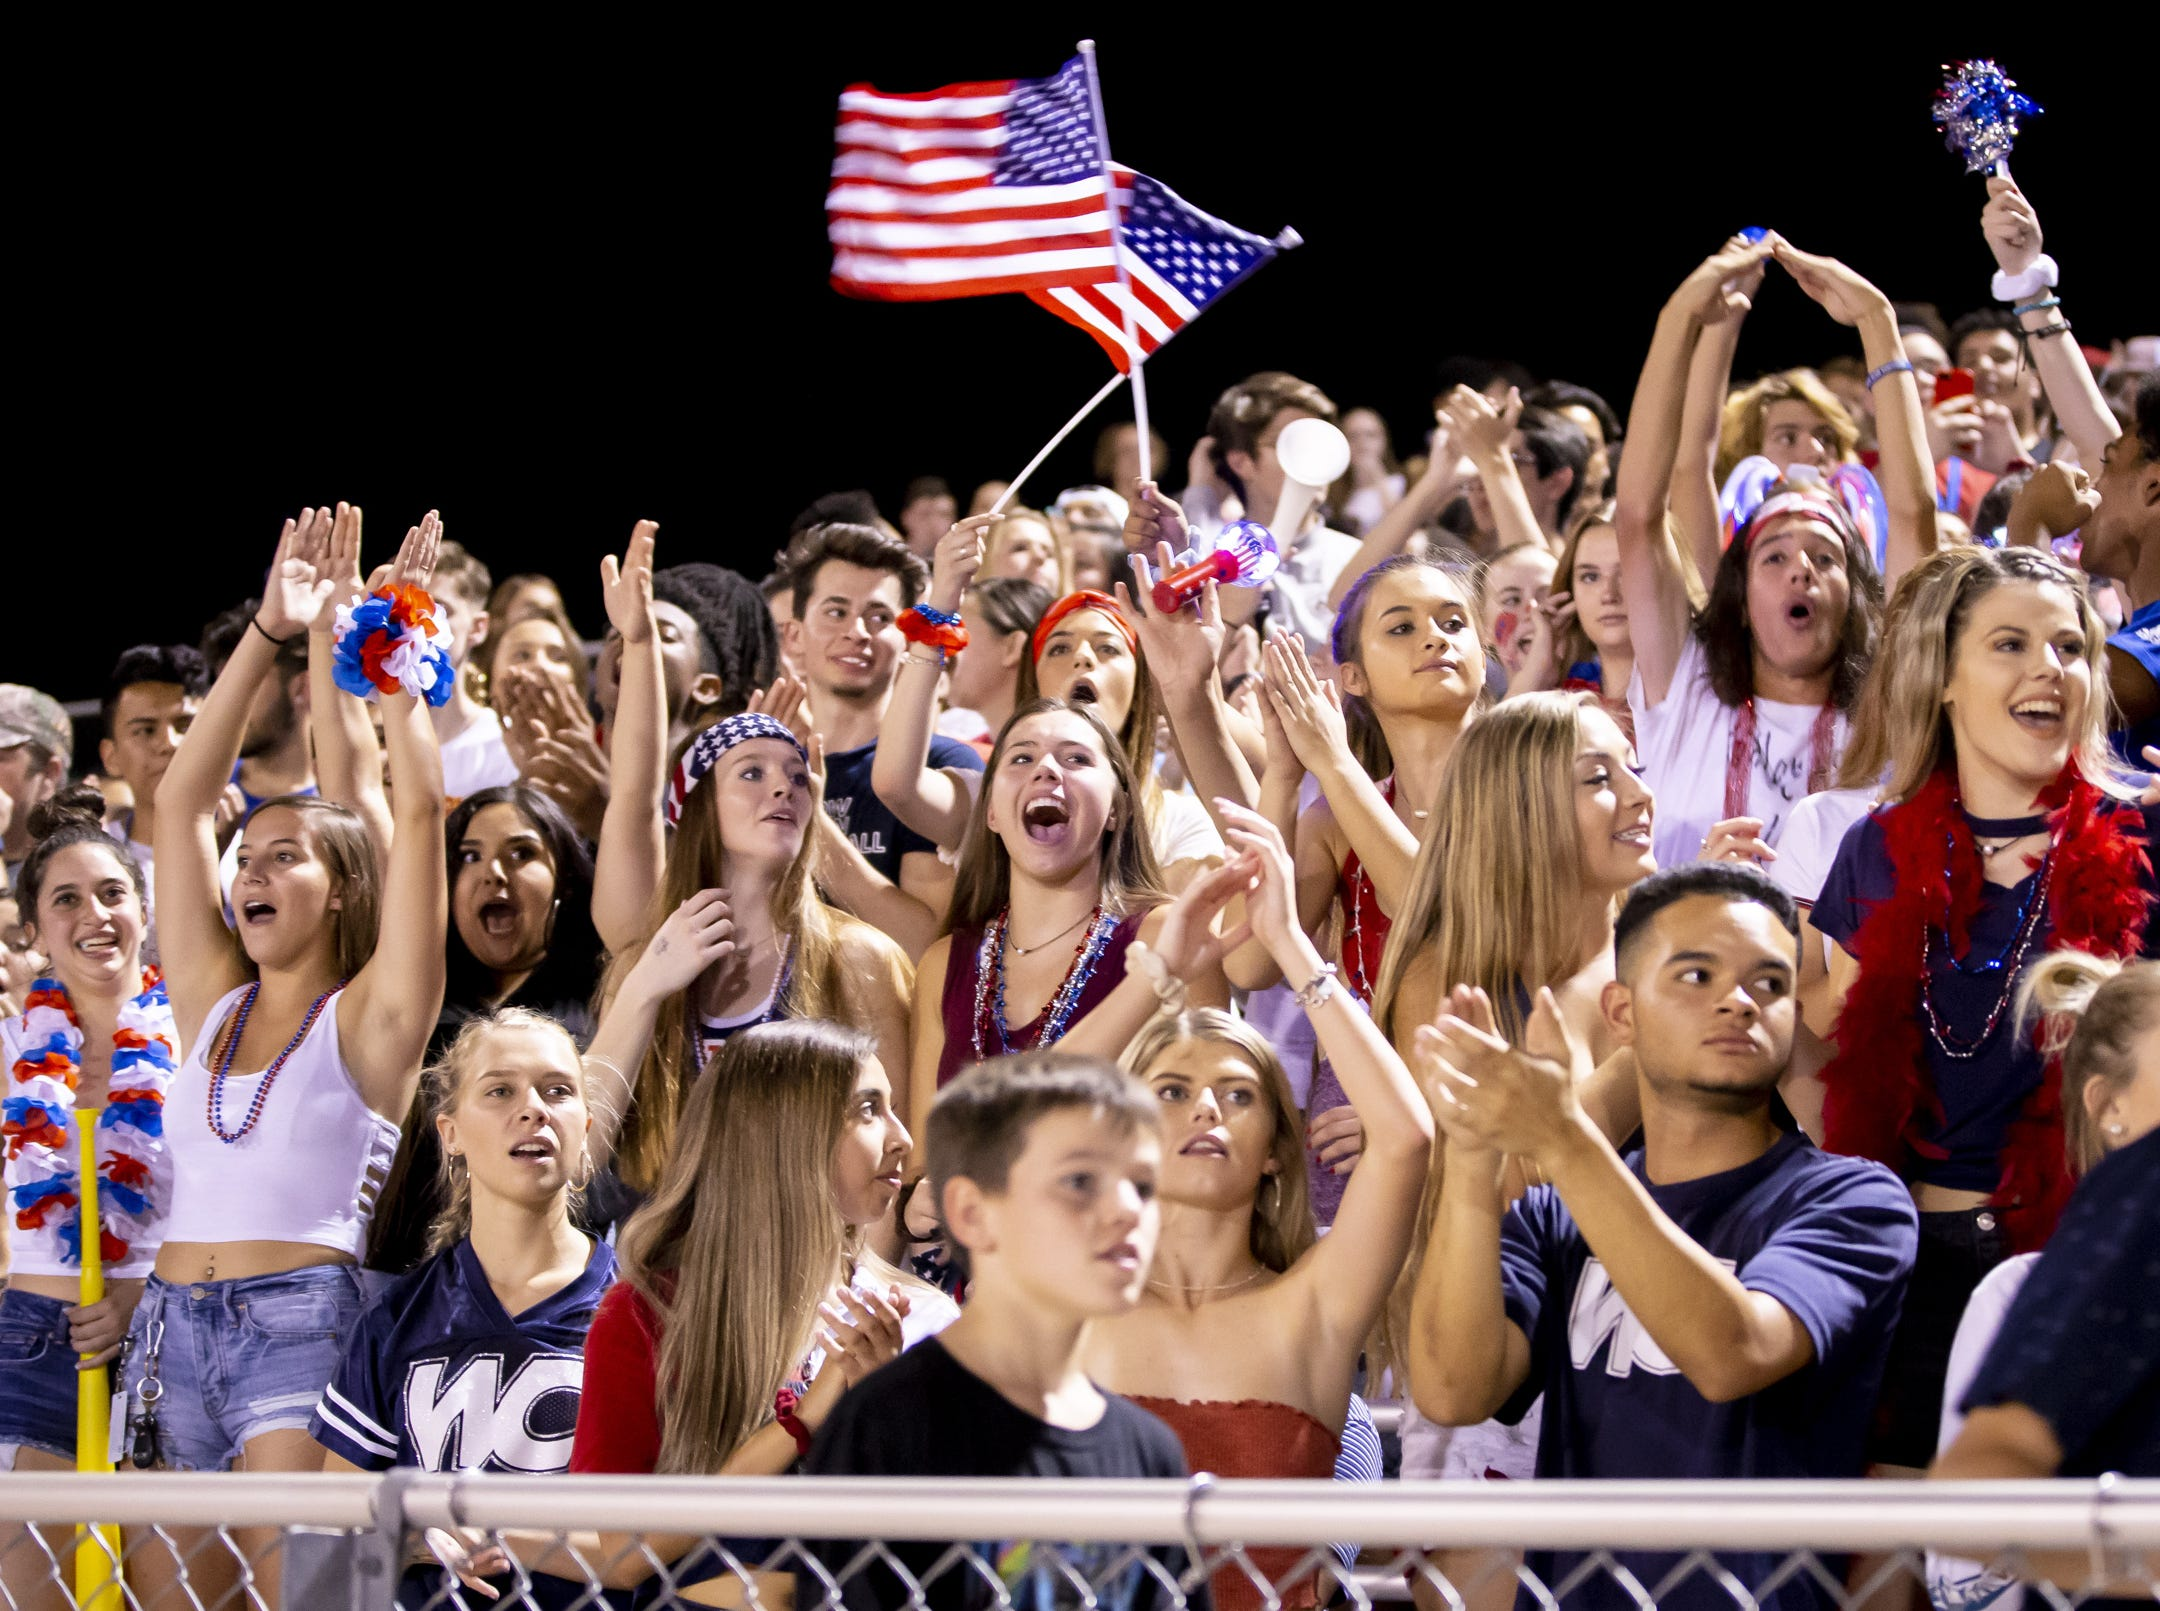 Willow Canyon fans cheer following a run against the Shadow Ridge Stallions at Willow Canyon High School on Friday, September 7, 2018 in Surprise, Arizona. #azhsfb